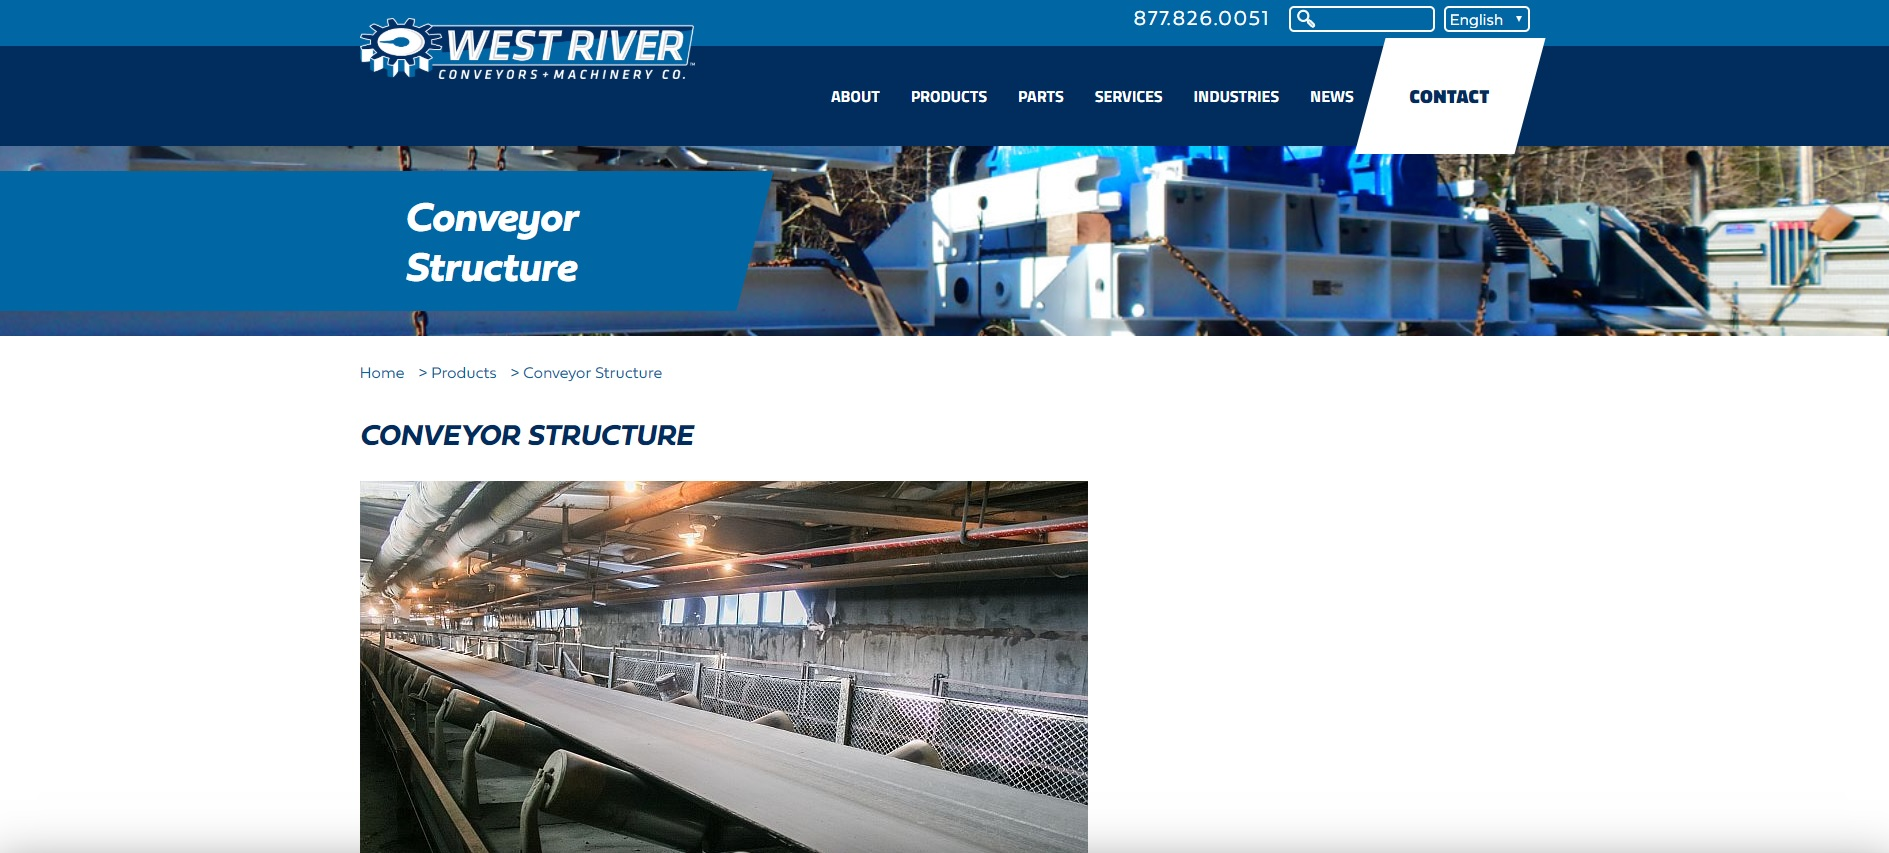 West River Conveyors & Machinery Co.